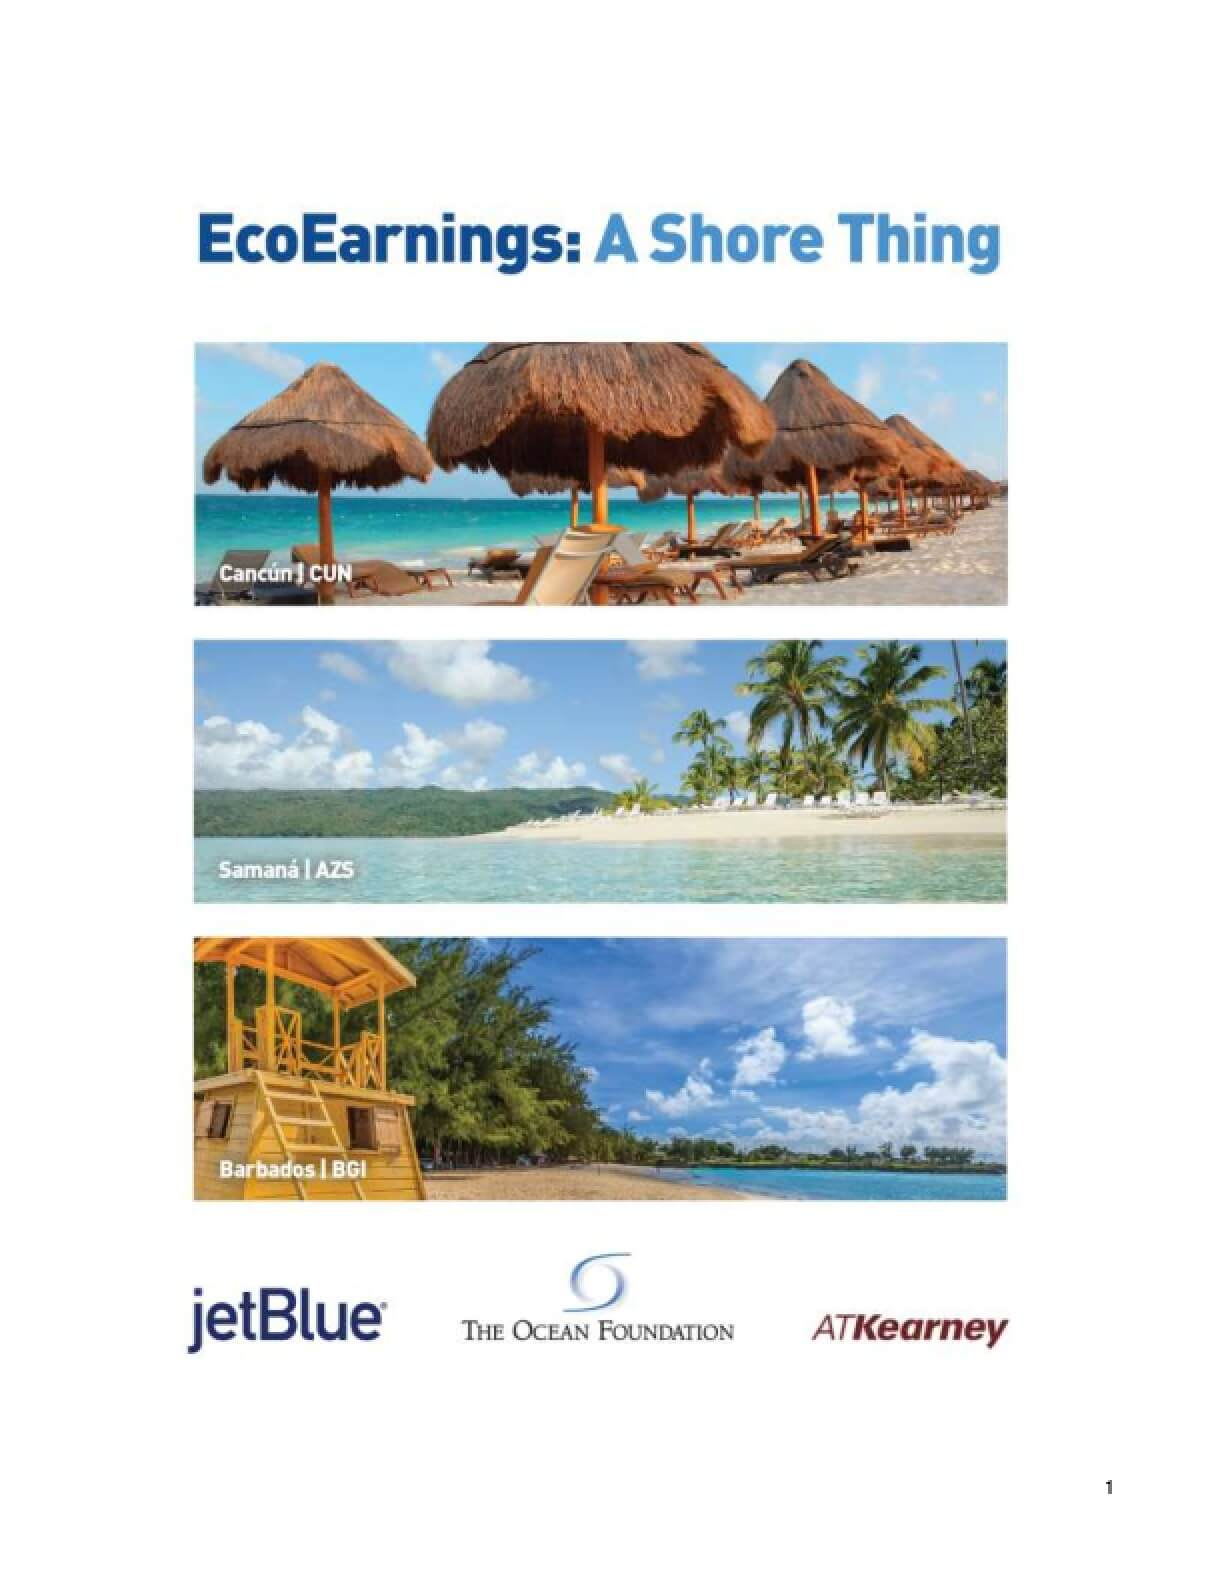 EcoEarnings: A Shore Thing